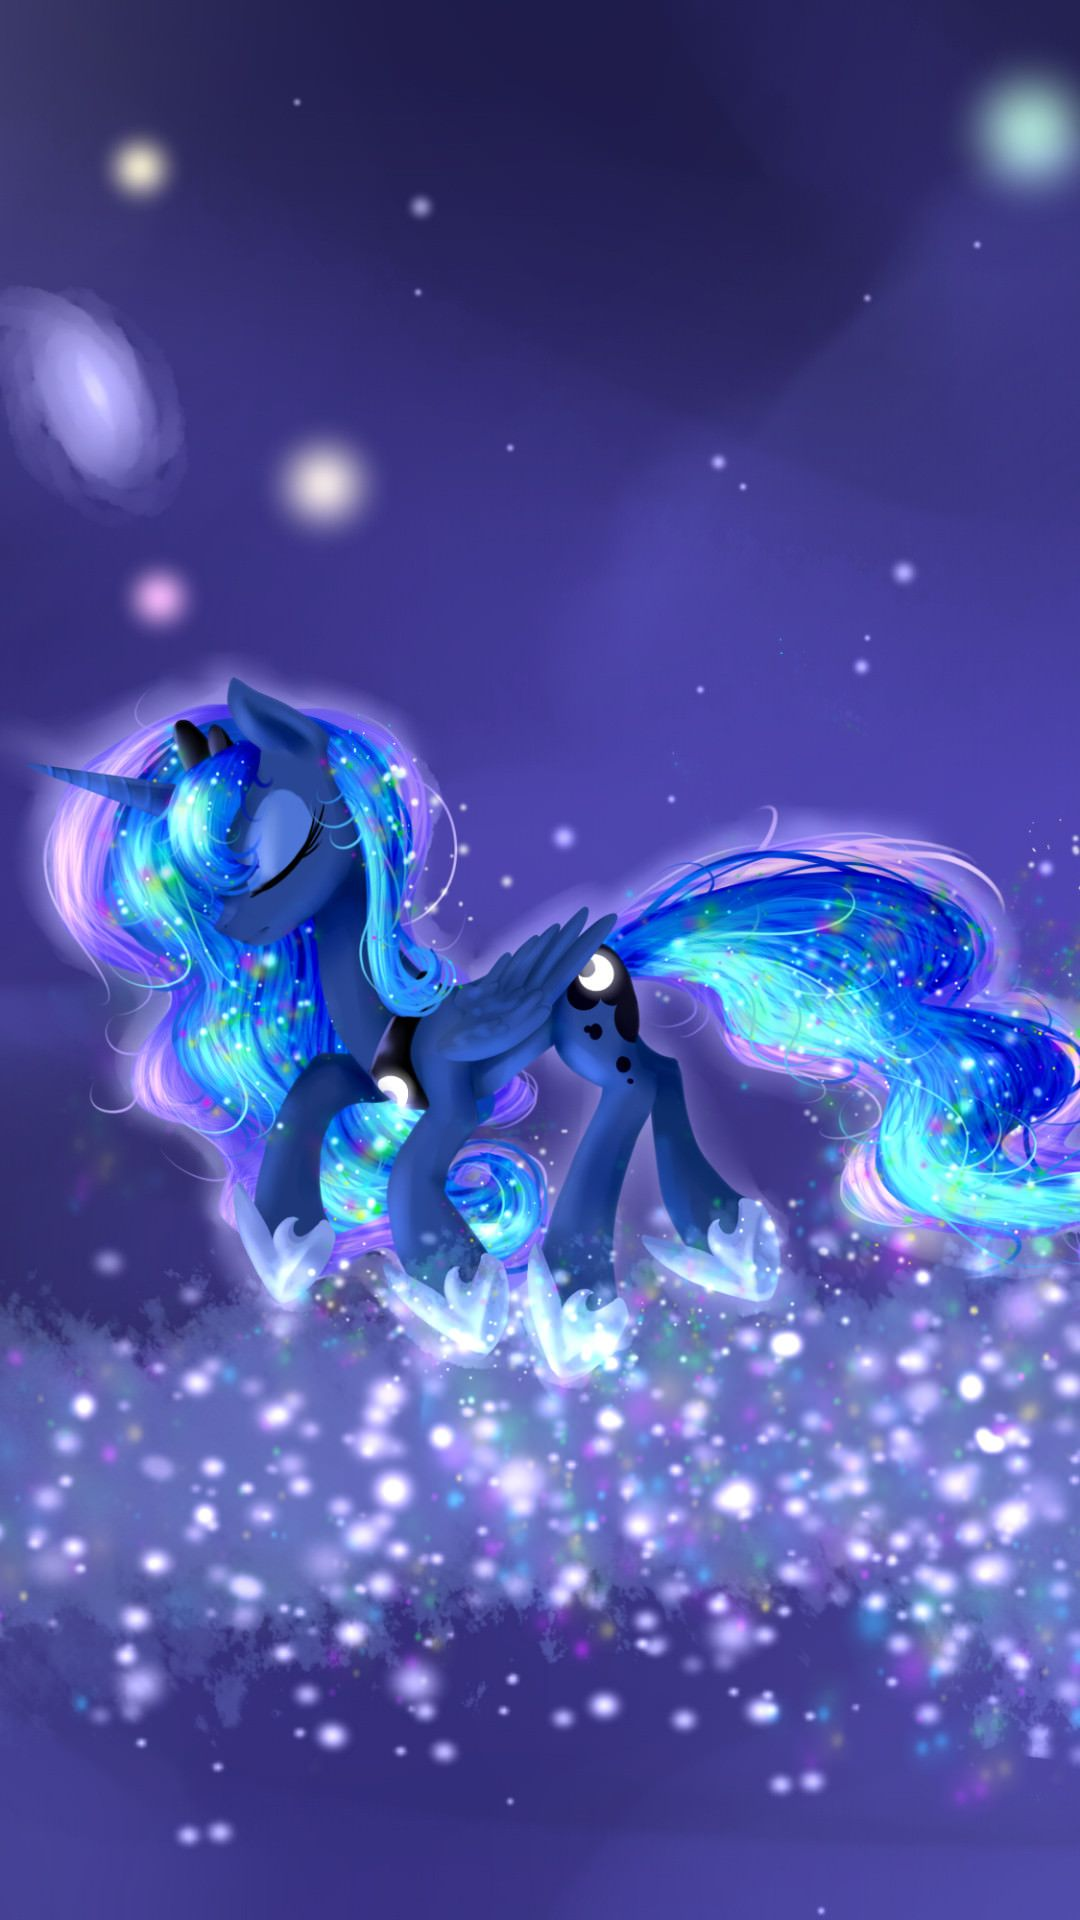 My Little Pony Iphone Wallpapers Top Free My Little Pony